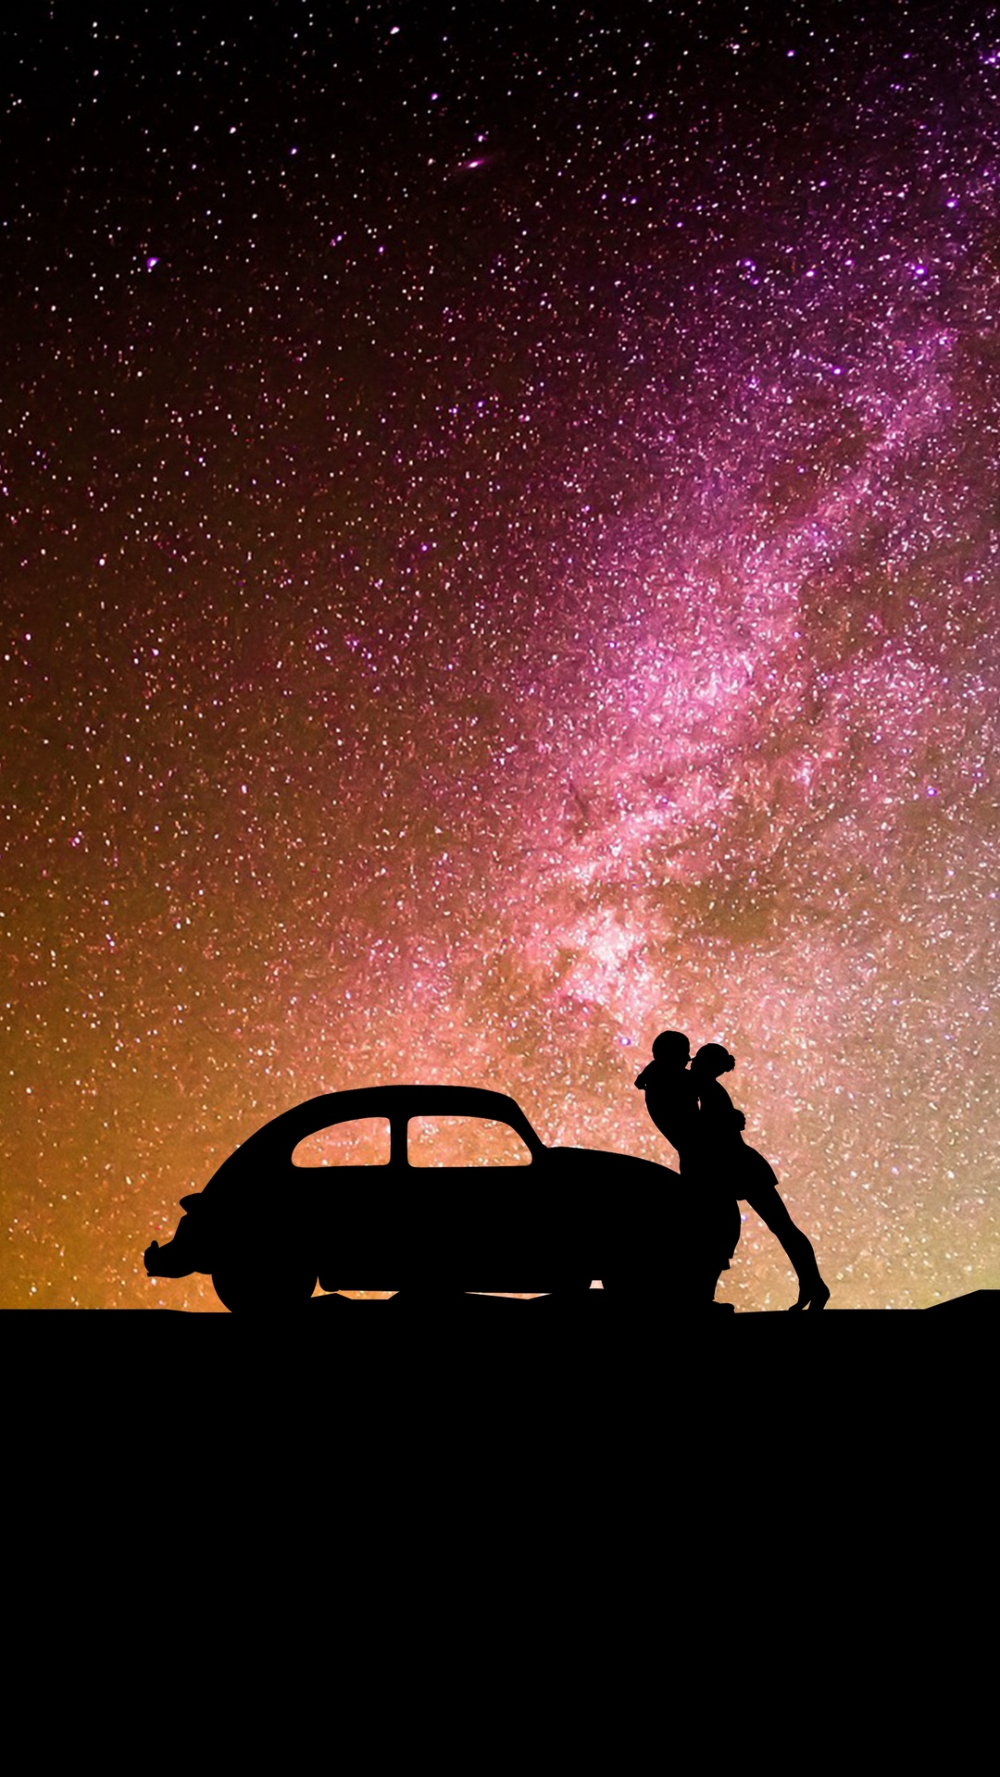 Download wallpaper 1080×1920 silhouettes, couple, hugs, auto, love, romance samsung galaxy s4, s5, note, sony xperia z, z1, z2, z3, htc one, lenovo vibe hd background